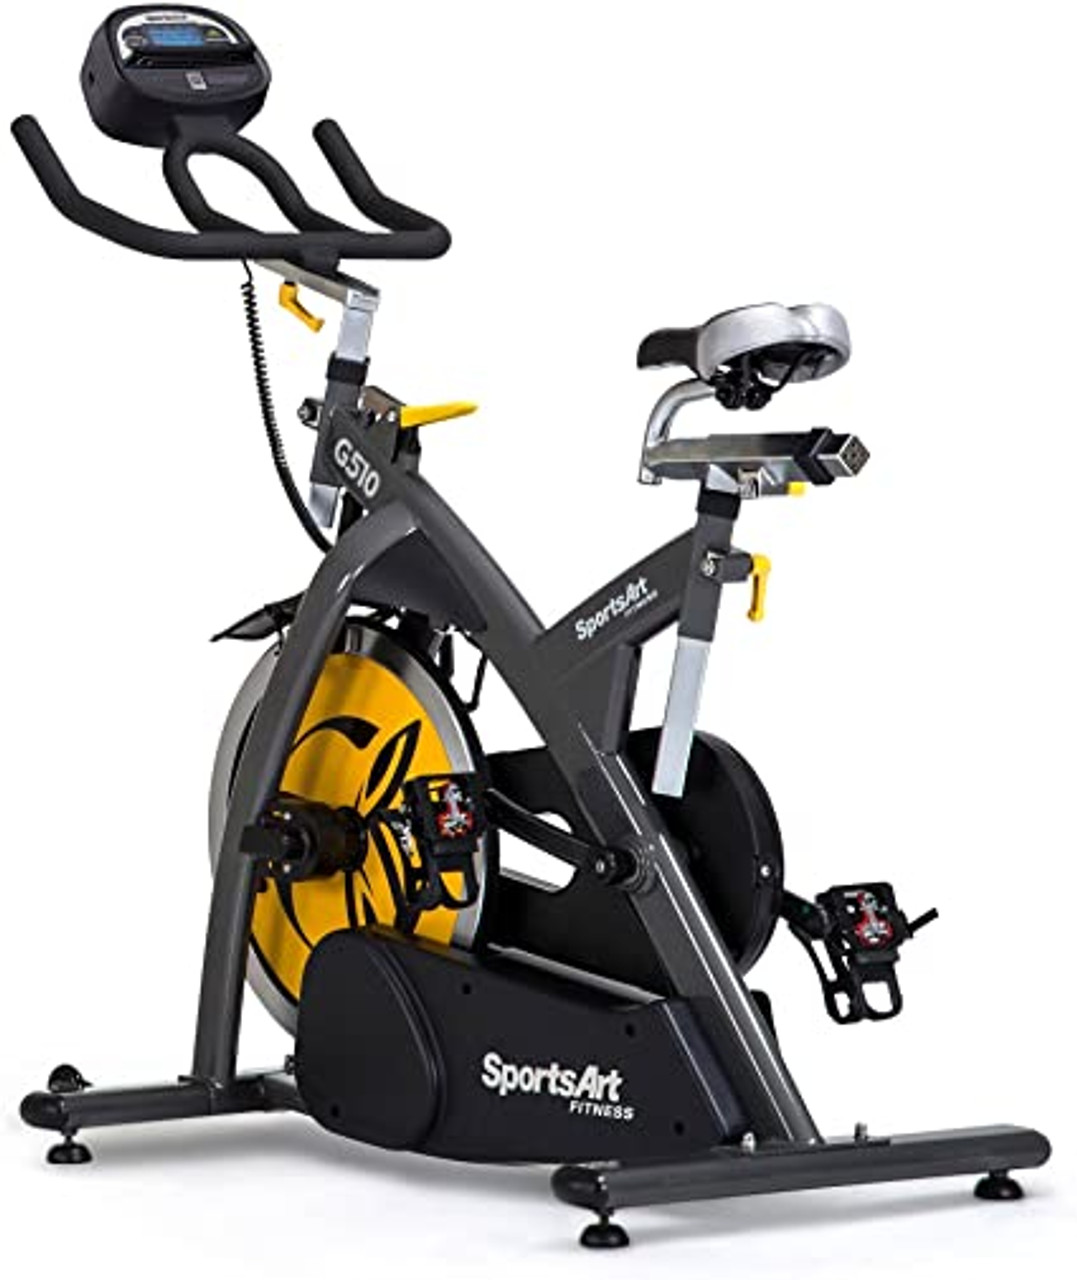 SportsArt G510 Indoor Cycle Eco Powr